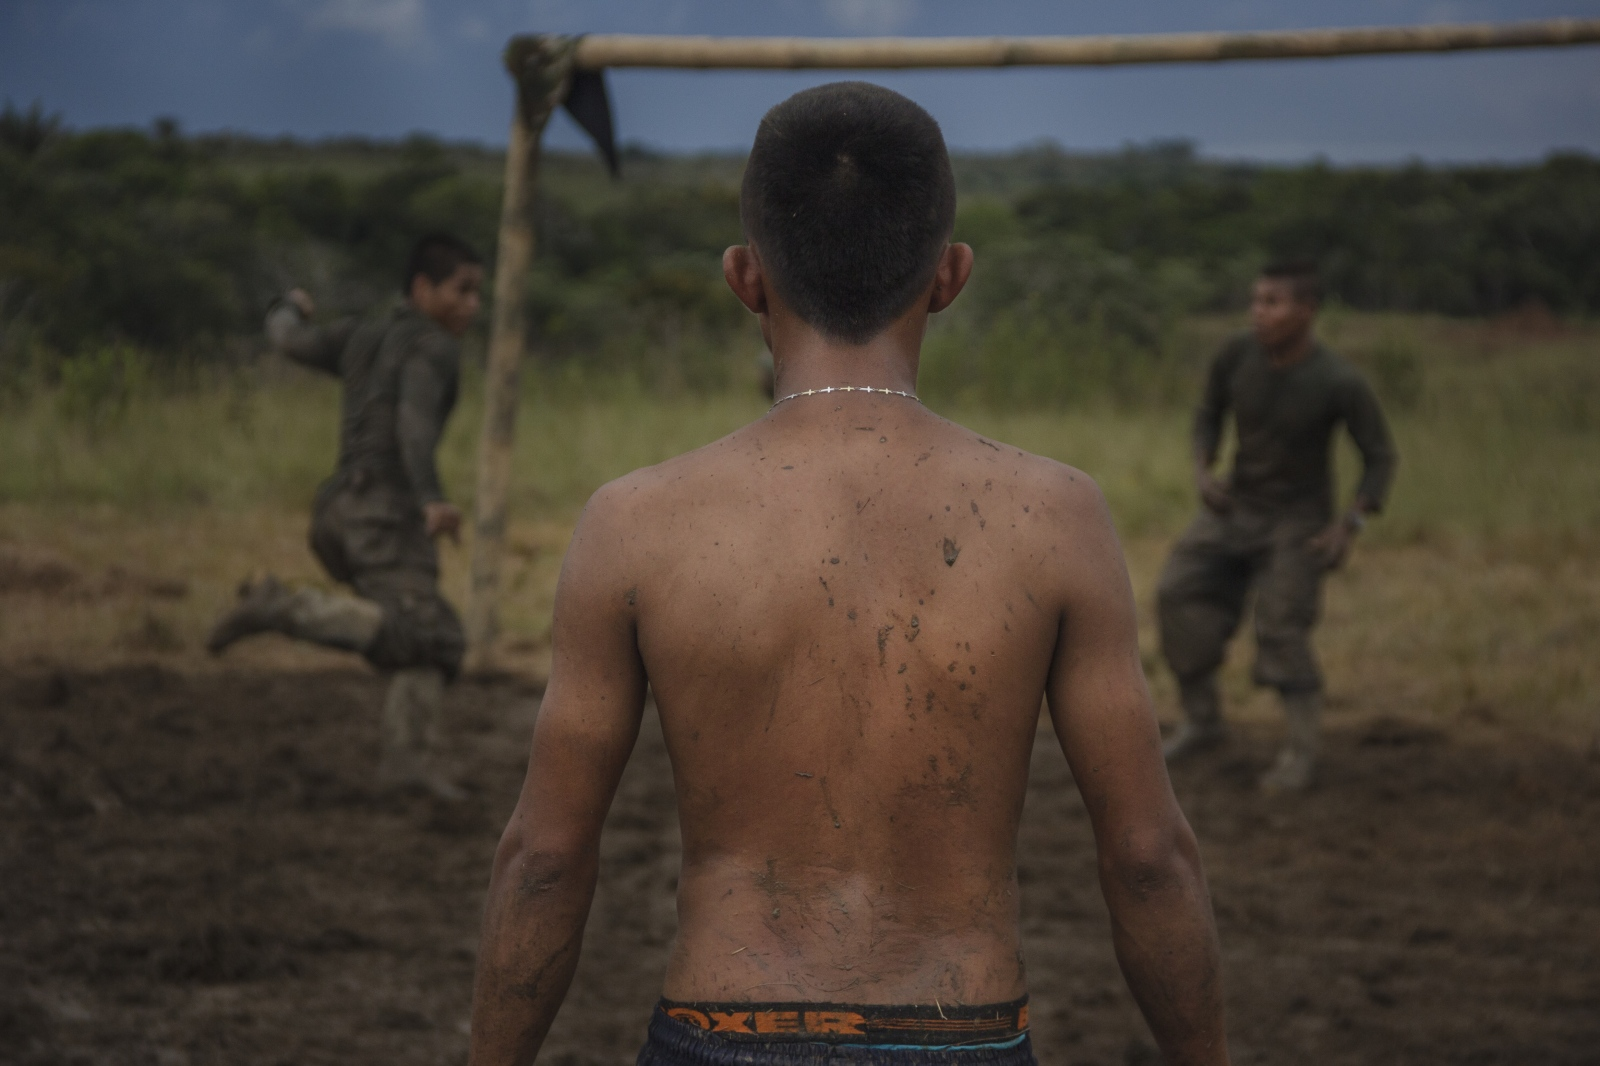 FARC EP guerrillas taking some free time to play a football game, few moments like this they can take advantage to get away, at least for a few minutes of the war.